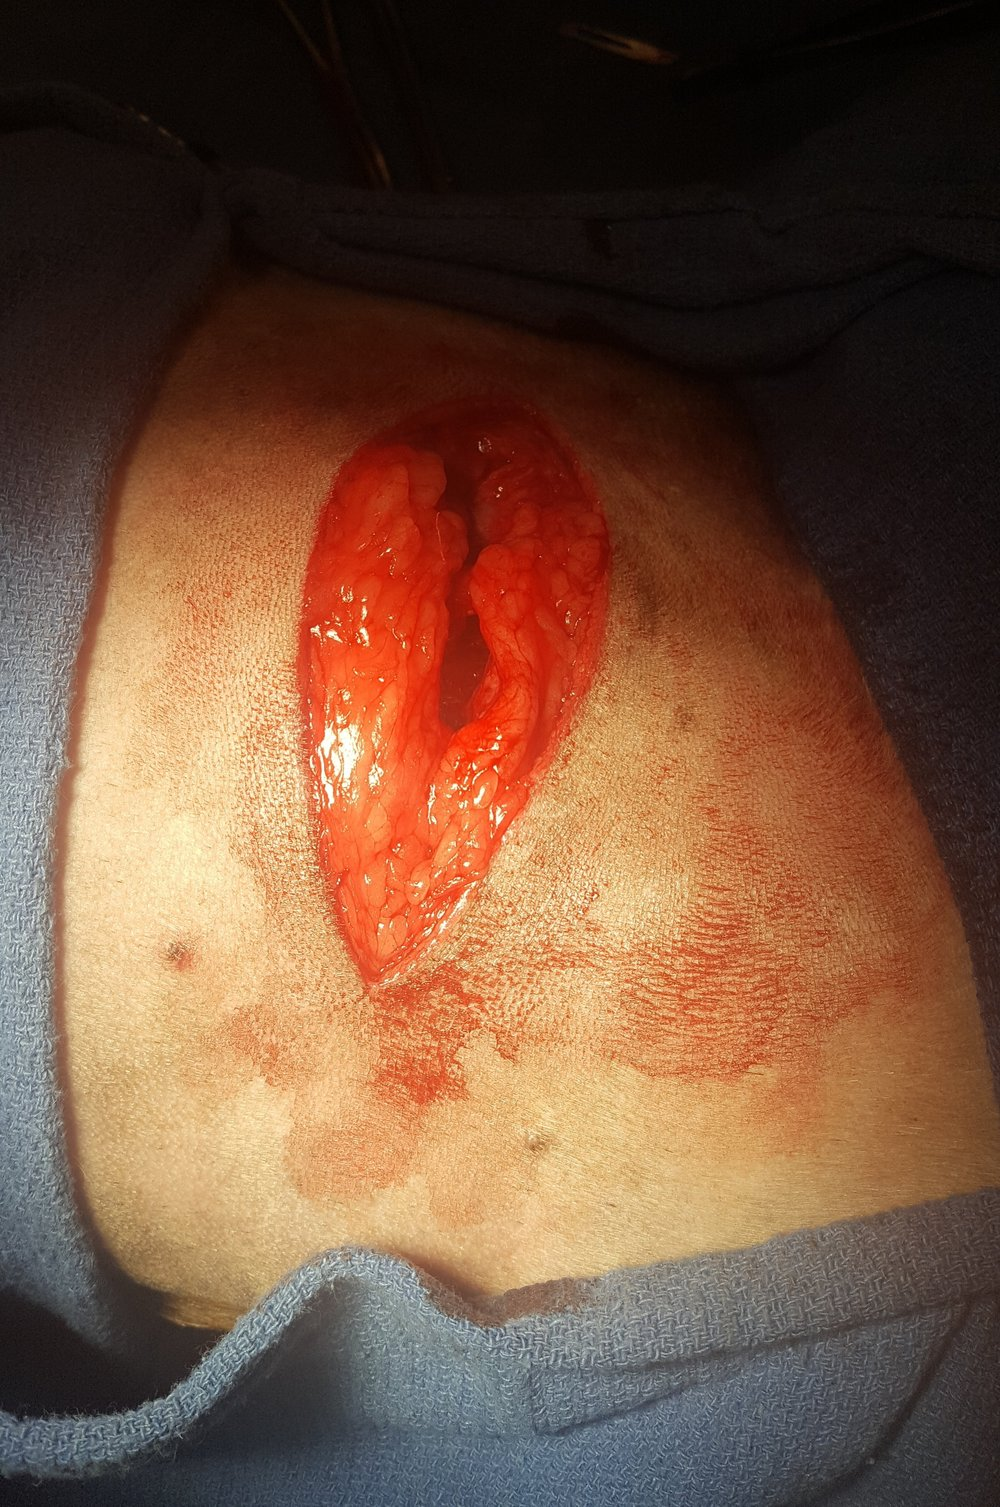 Mass removal incision